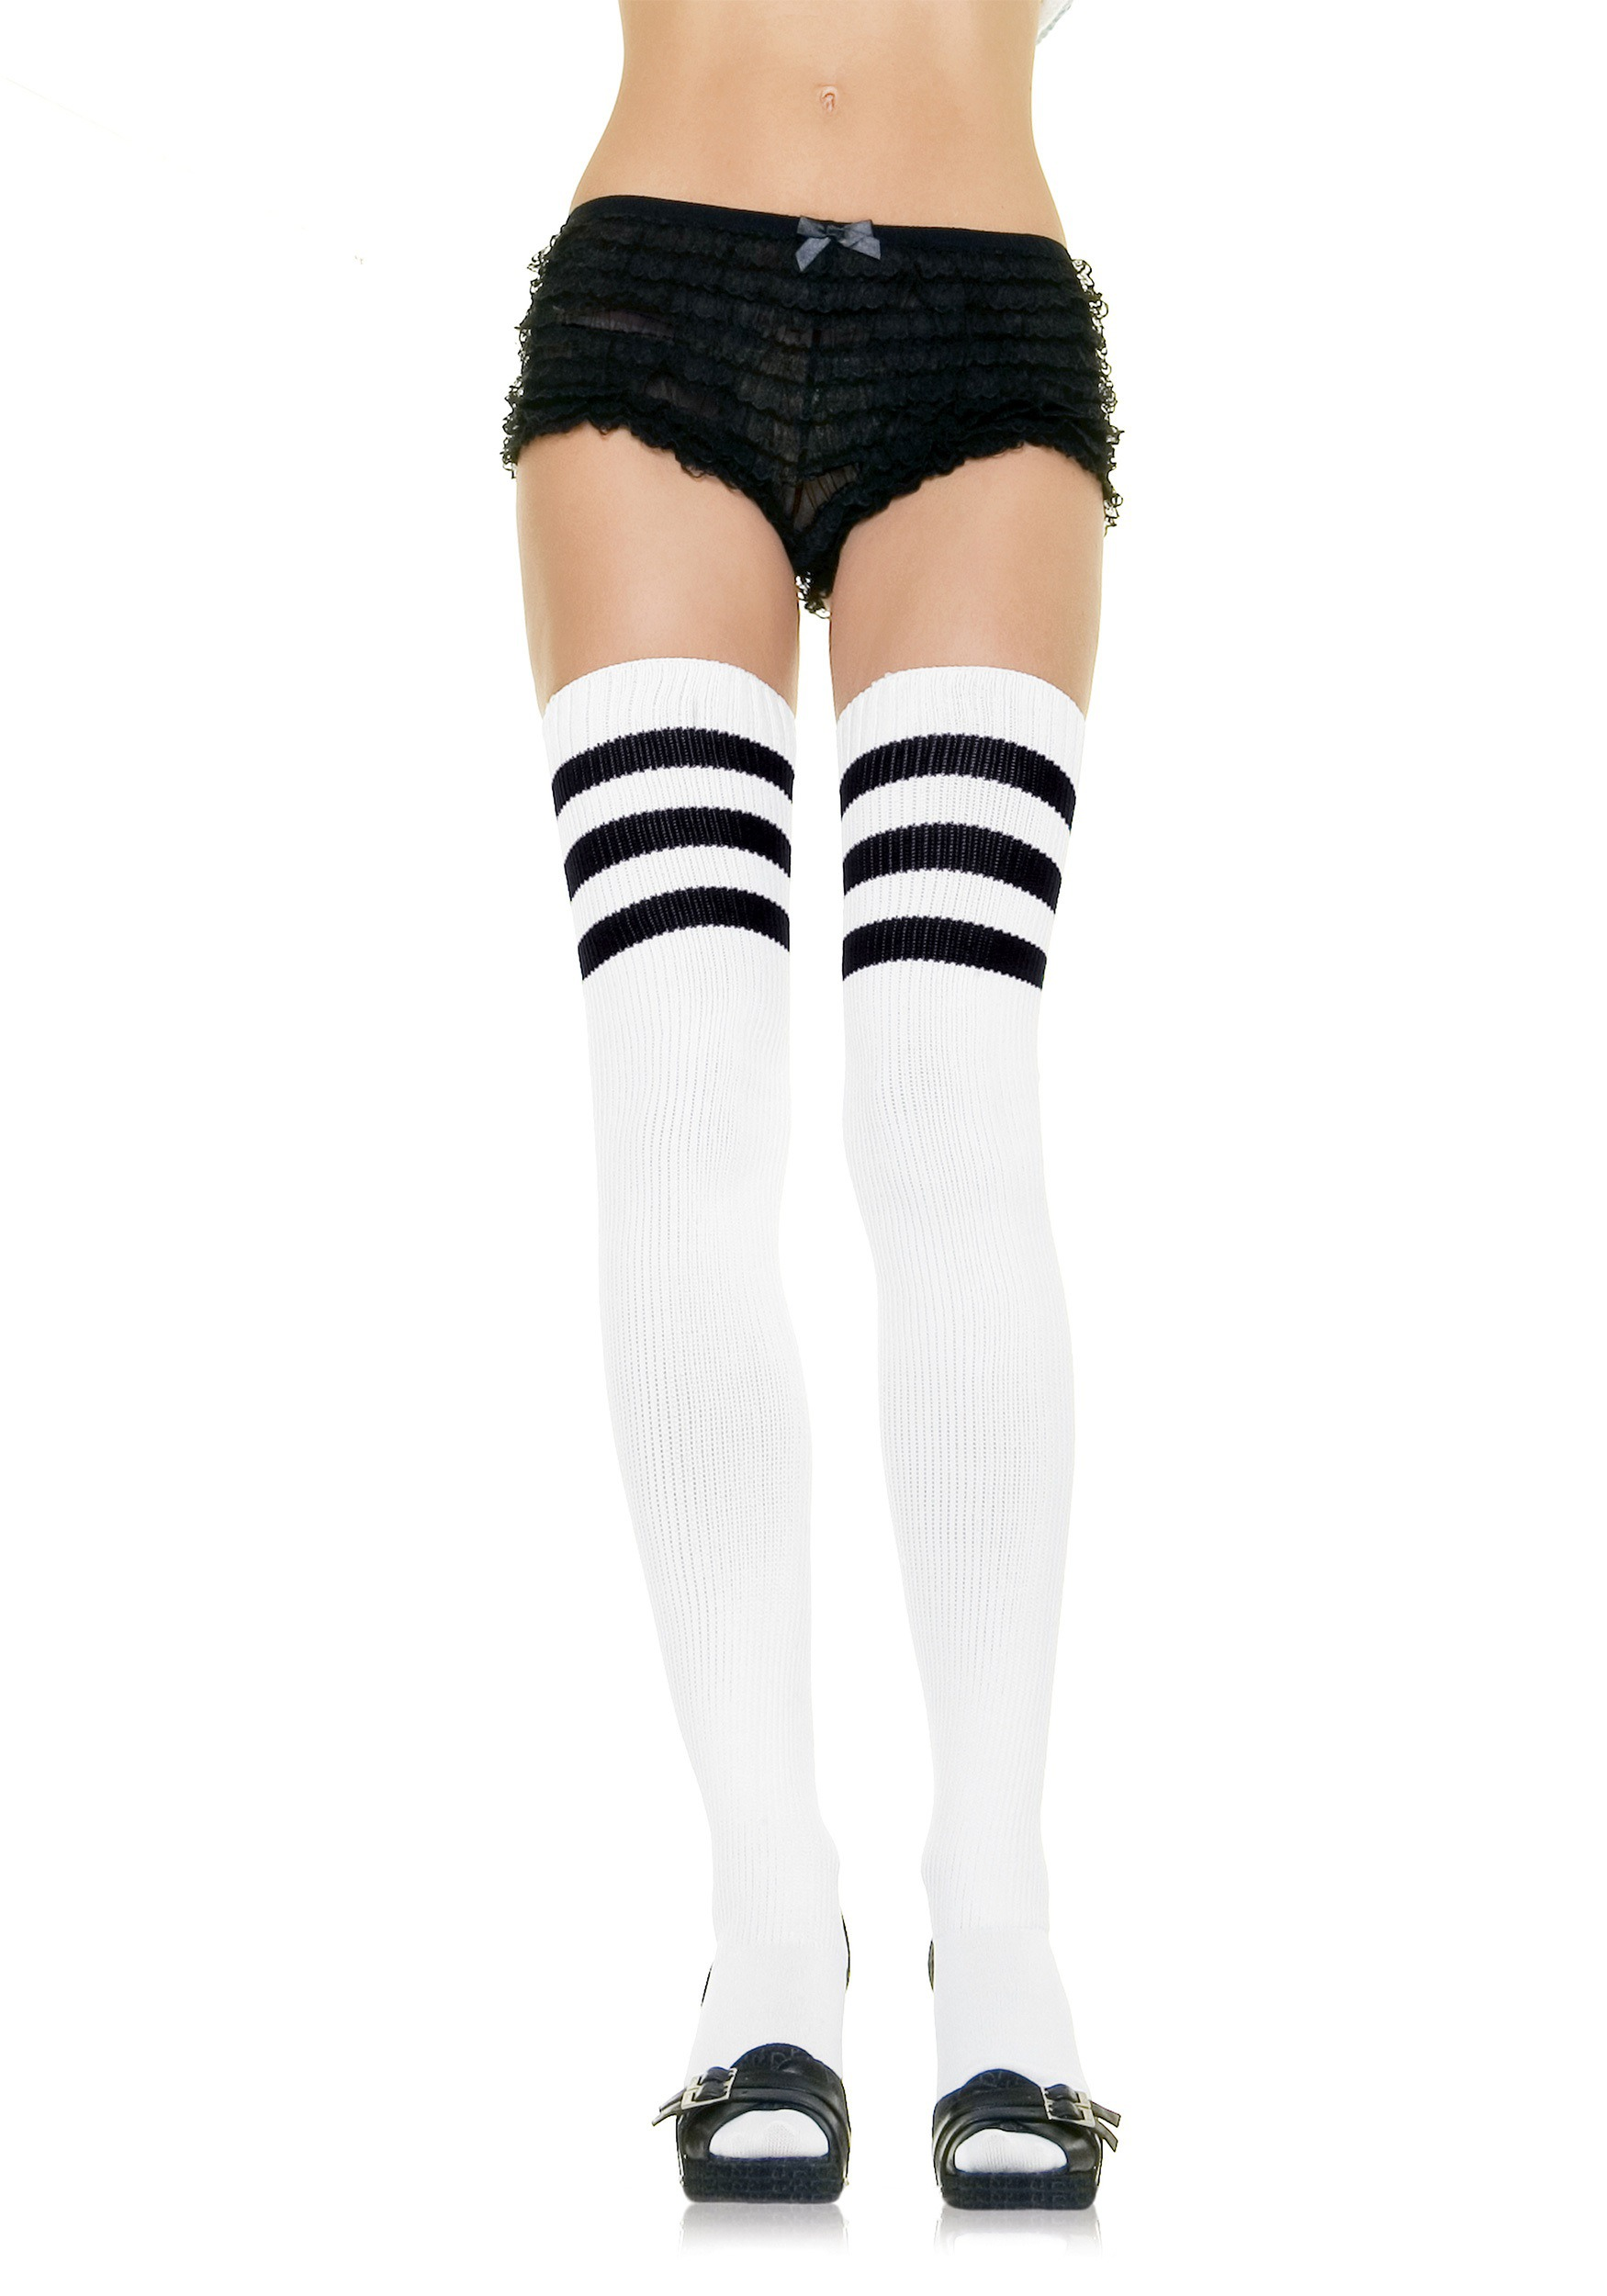 f7f334208a4 Women s White Athletic Socks with Black Stripes